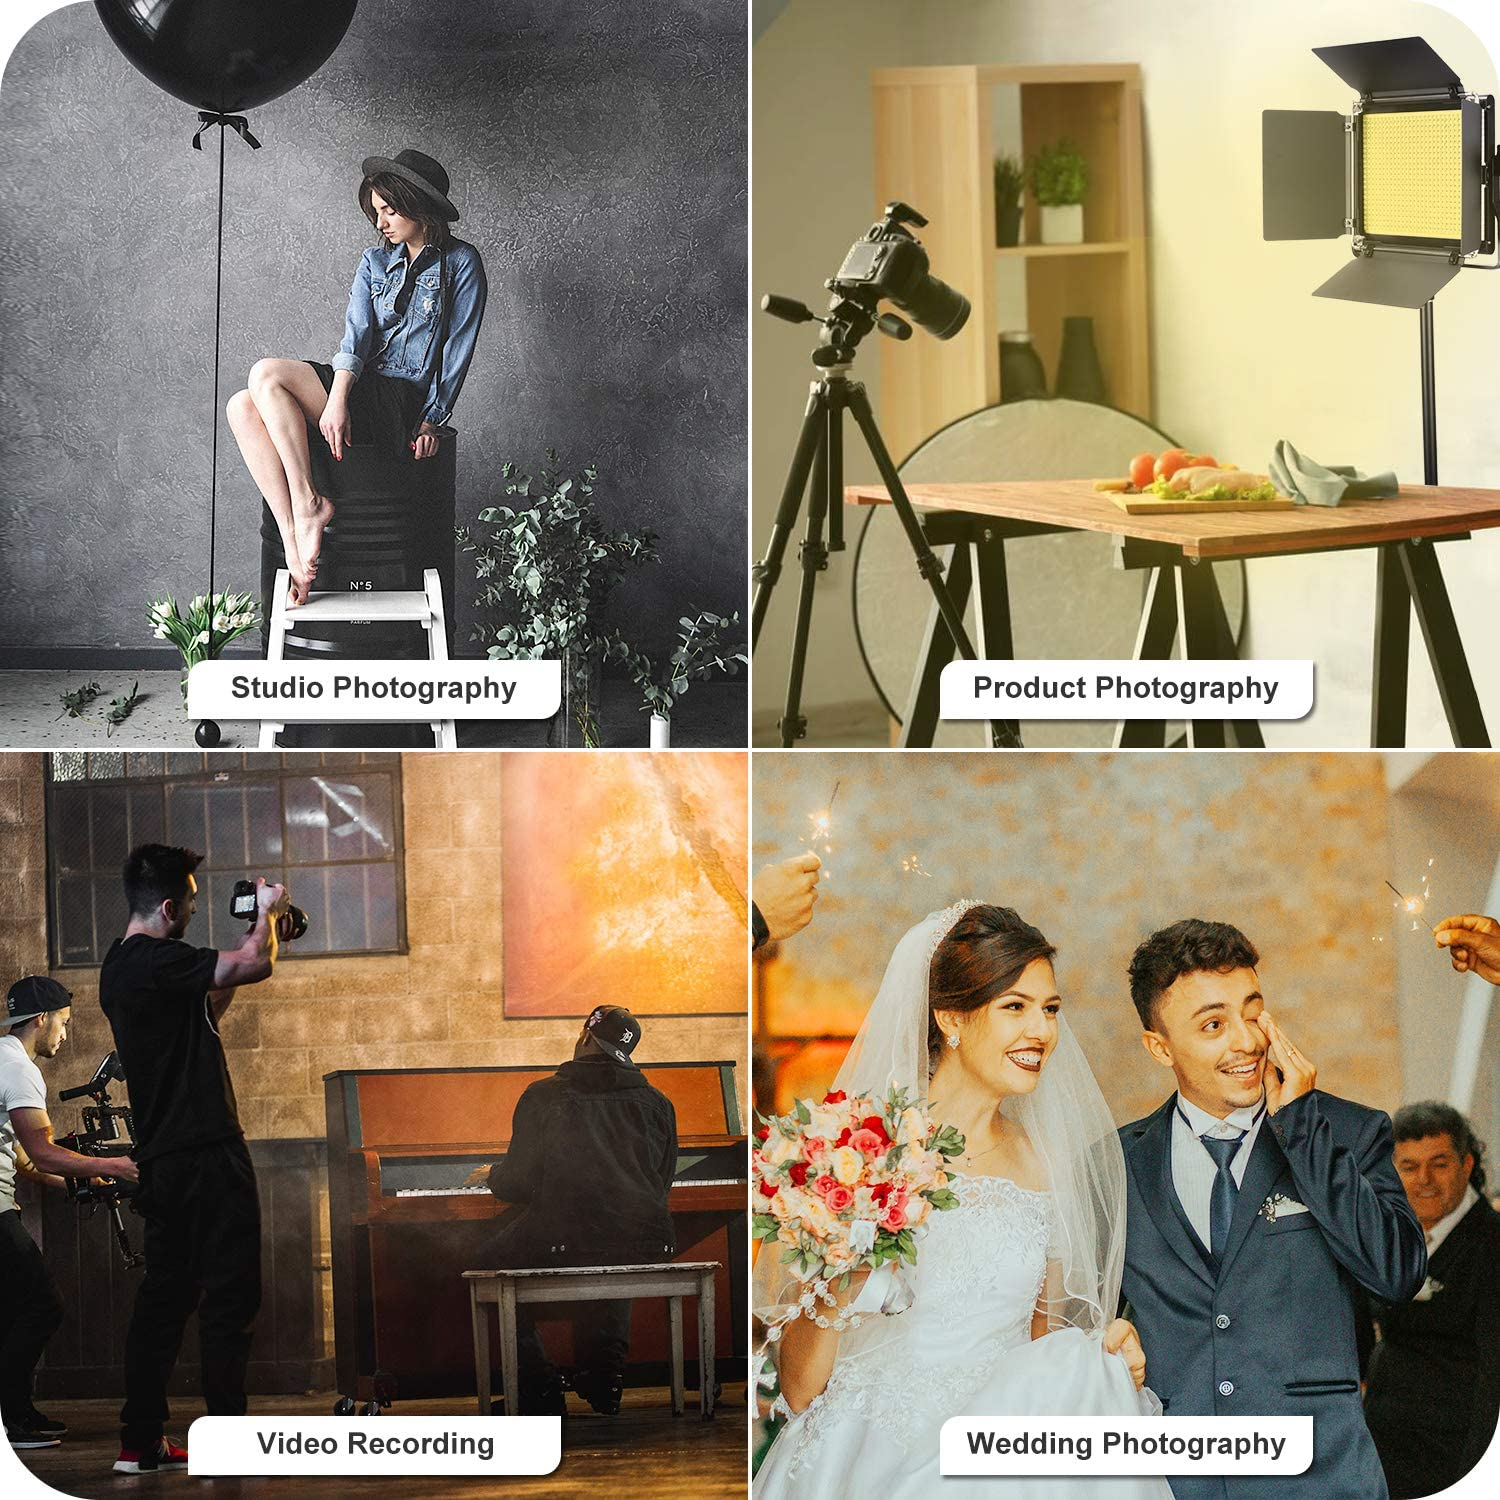 3200-5600K Dimmable CRI96+ Light with U Bracket and Barndoor 1 2 2 8-Color Filter Set Large Carrying Bag for Studio Video Shooting 2 Light Stand Neewer 2 Packs 660 LED Video Light with Stand Kit: